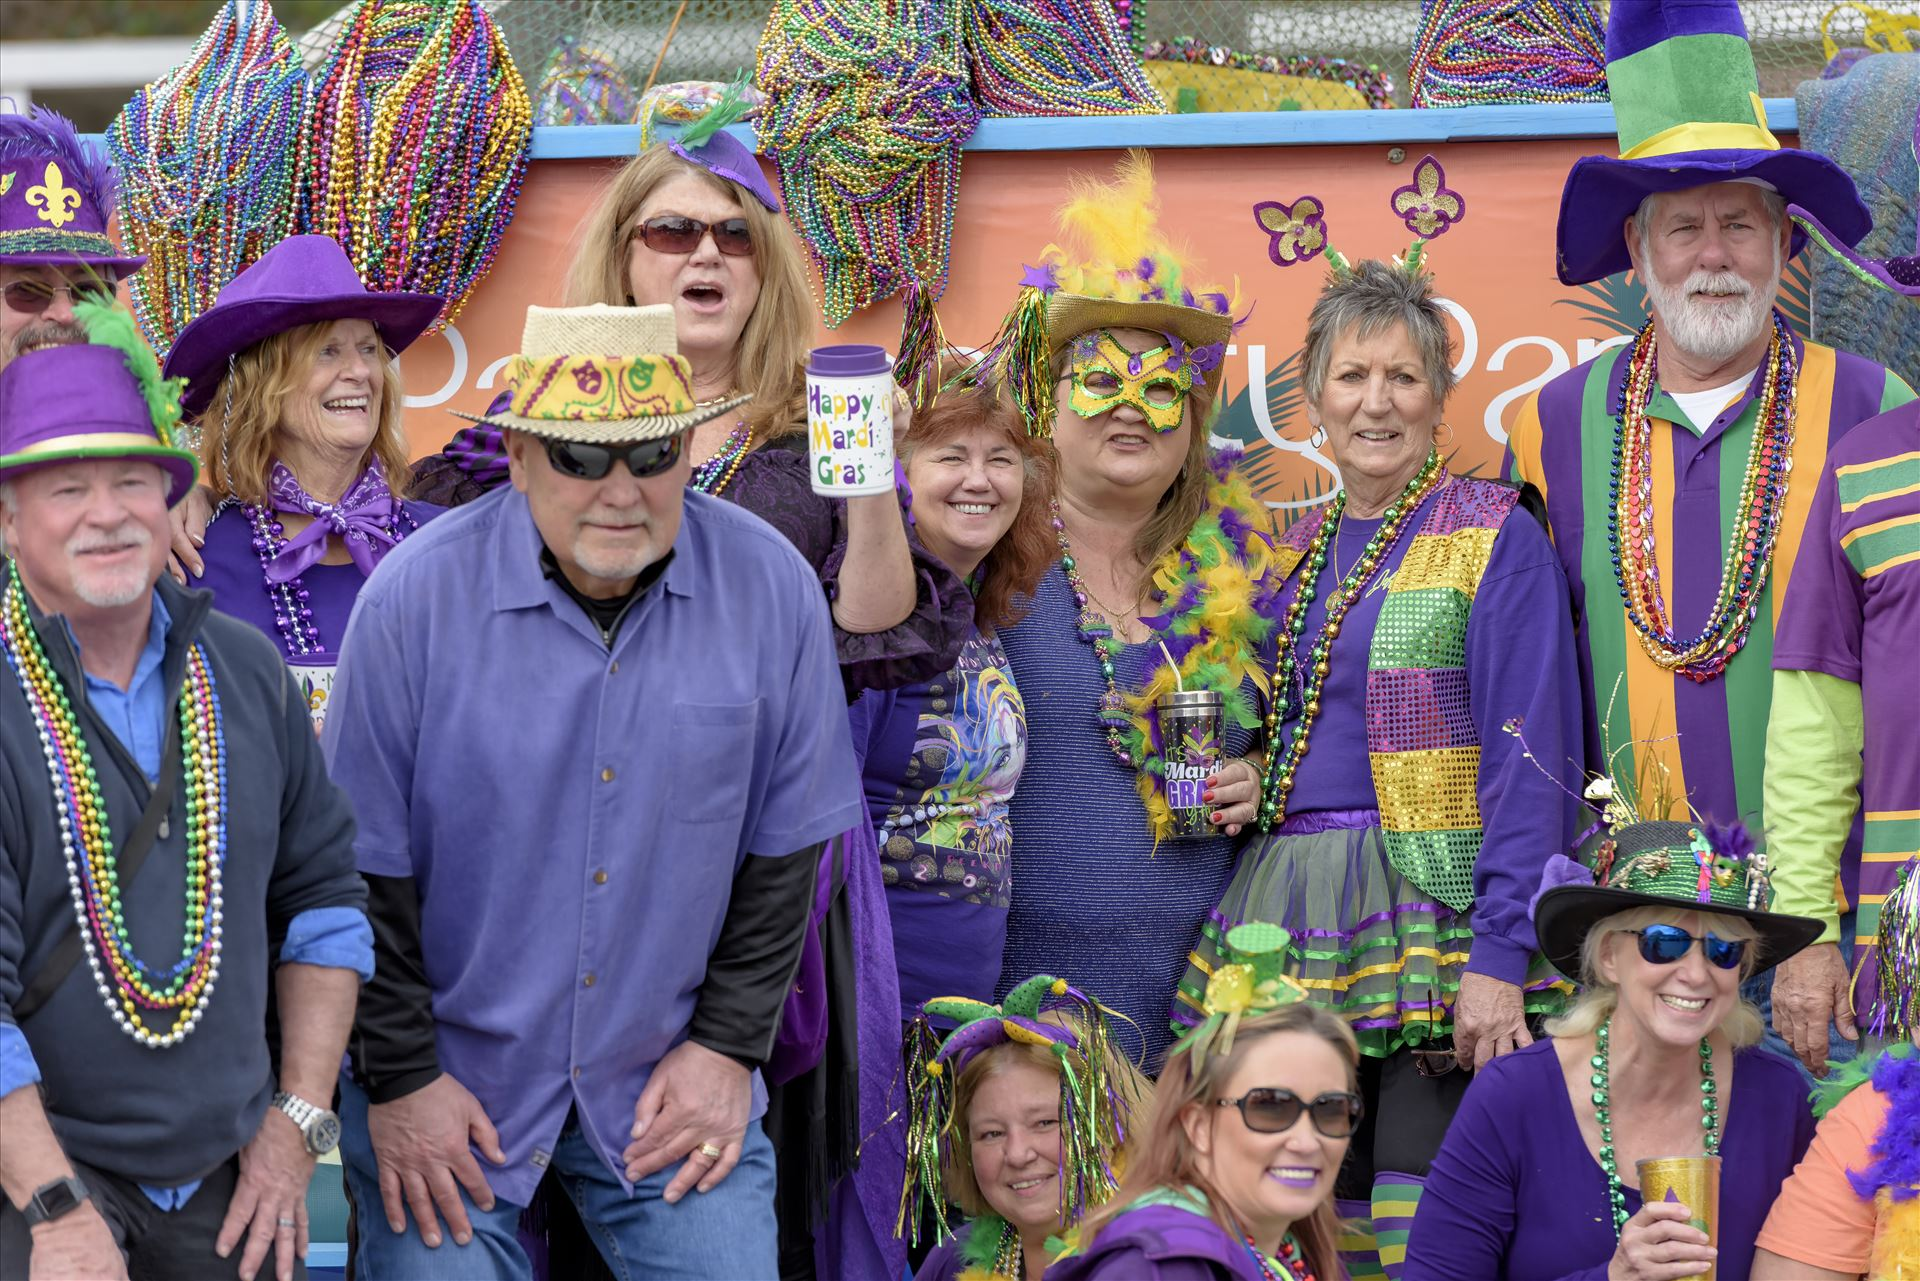 St. Andrews Mardi Gras Parade - Saturday Feb 3, 2018 The St. Andrews Mardi Gras, the official Mardi Gras parade and festival of Panama City, Florida.